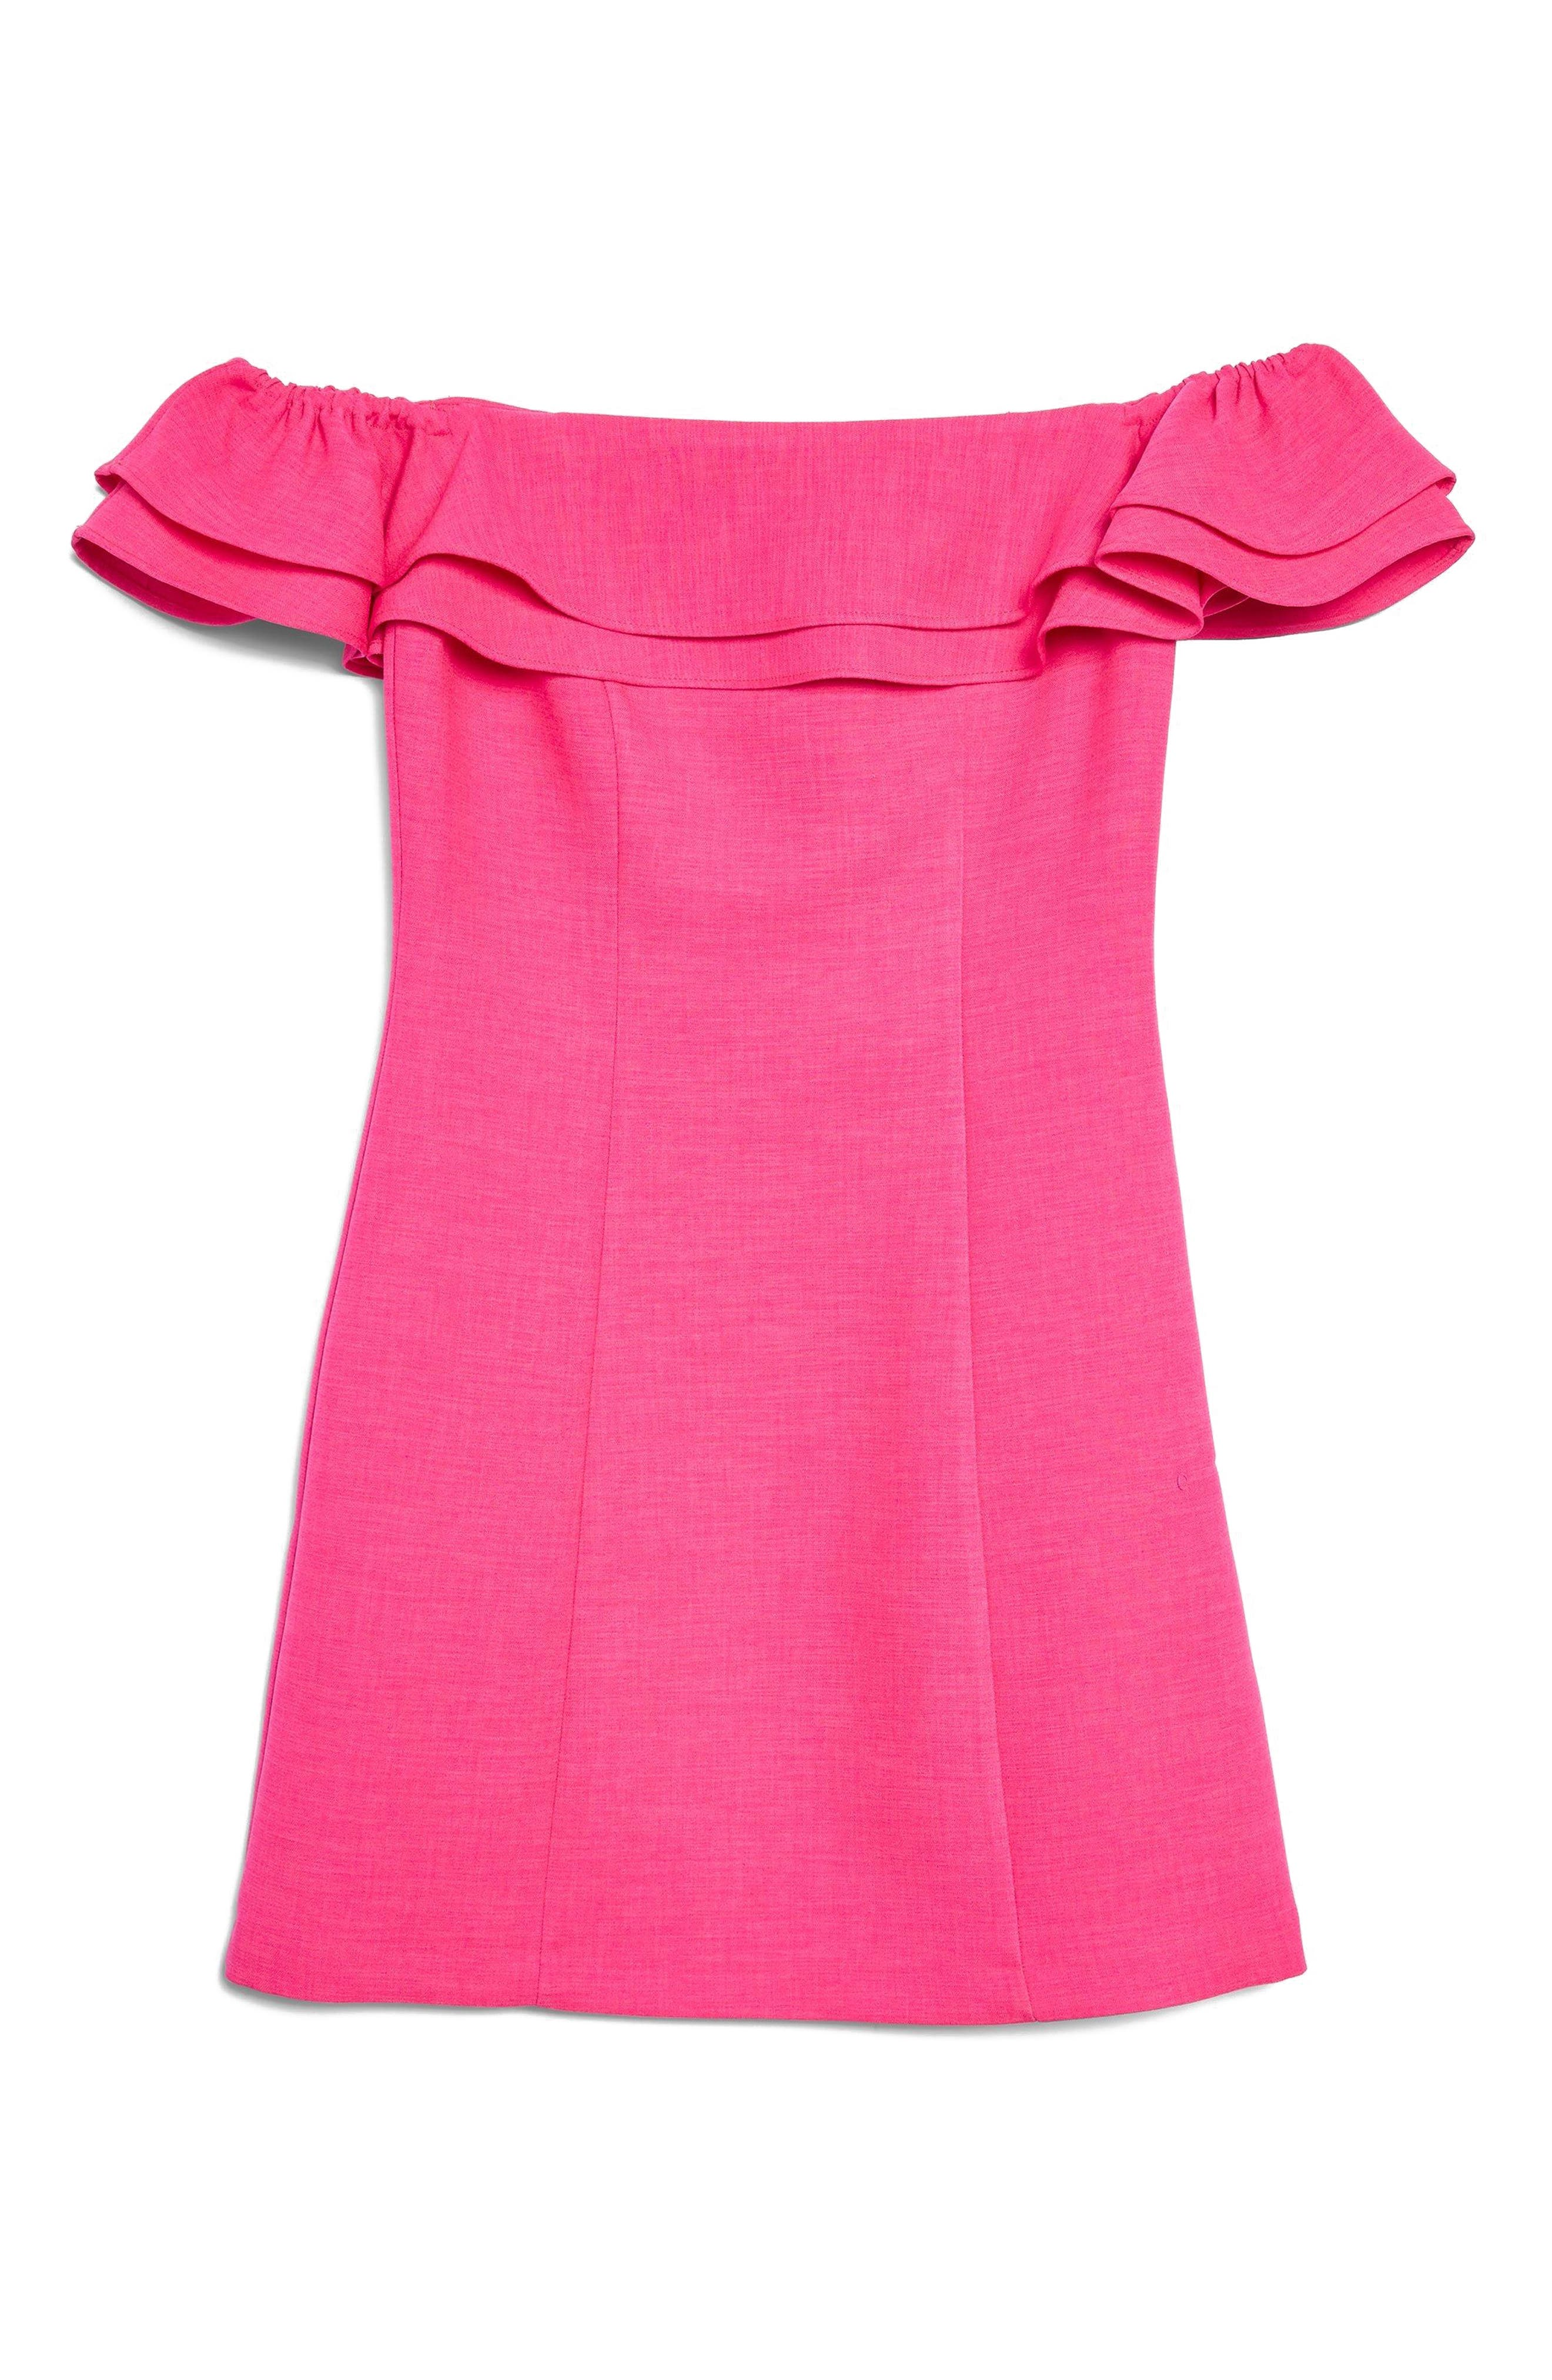 Off the Shoulder Ruffle Minidress,                             Alternate thumbnail 5, color,                             Pink